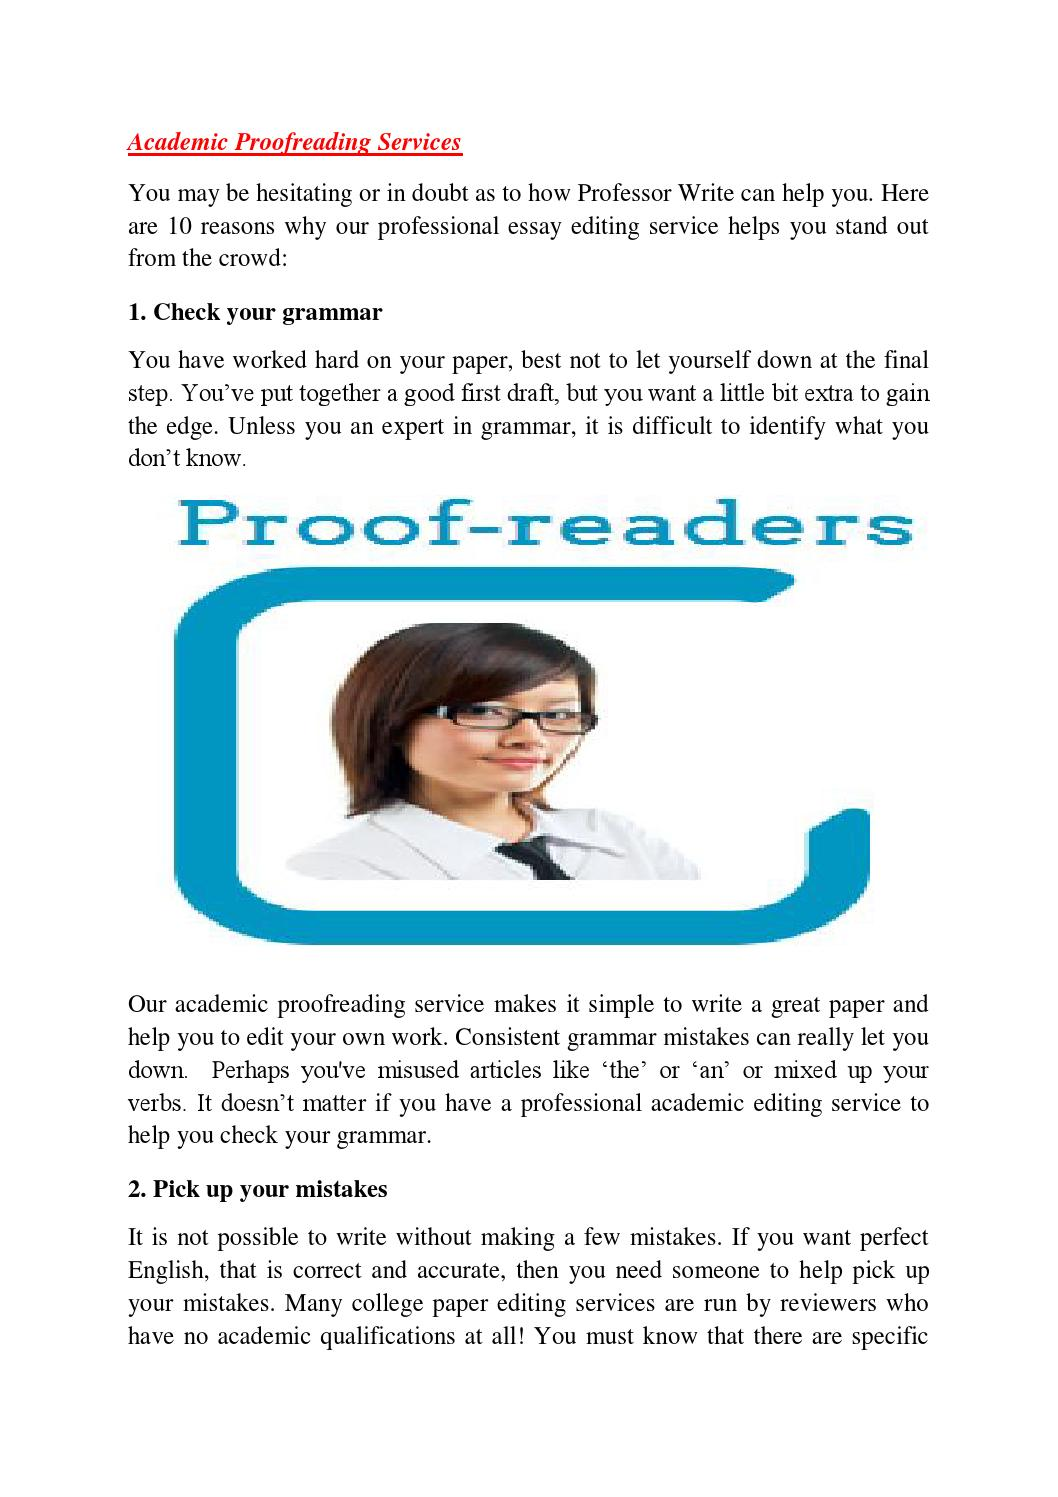 Academic proofreading services by Brendan Moloney - issuu